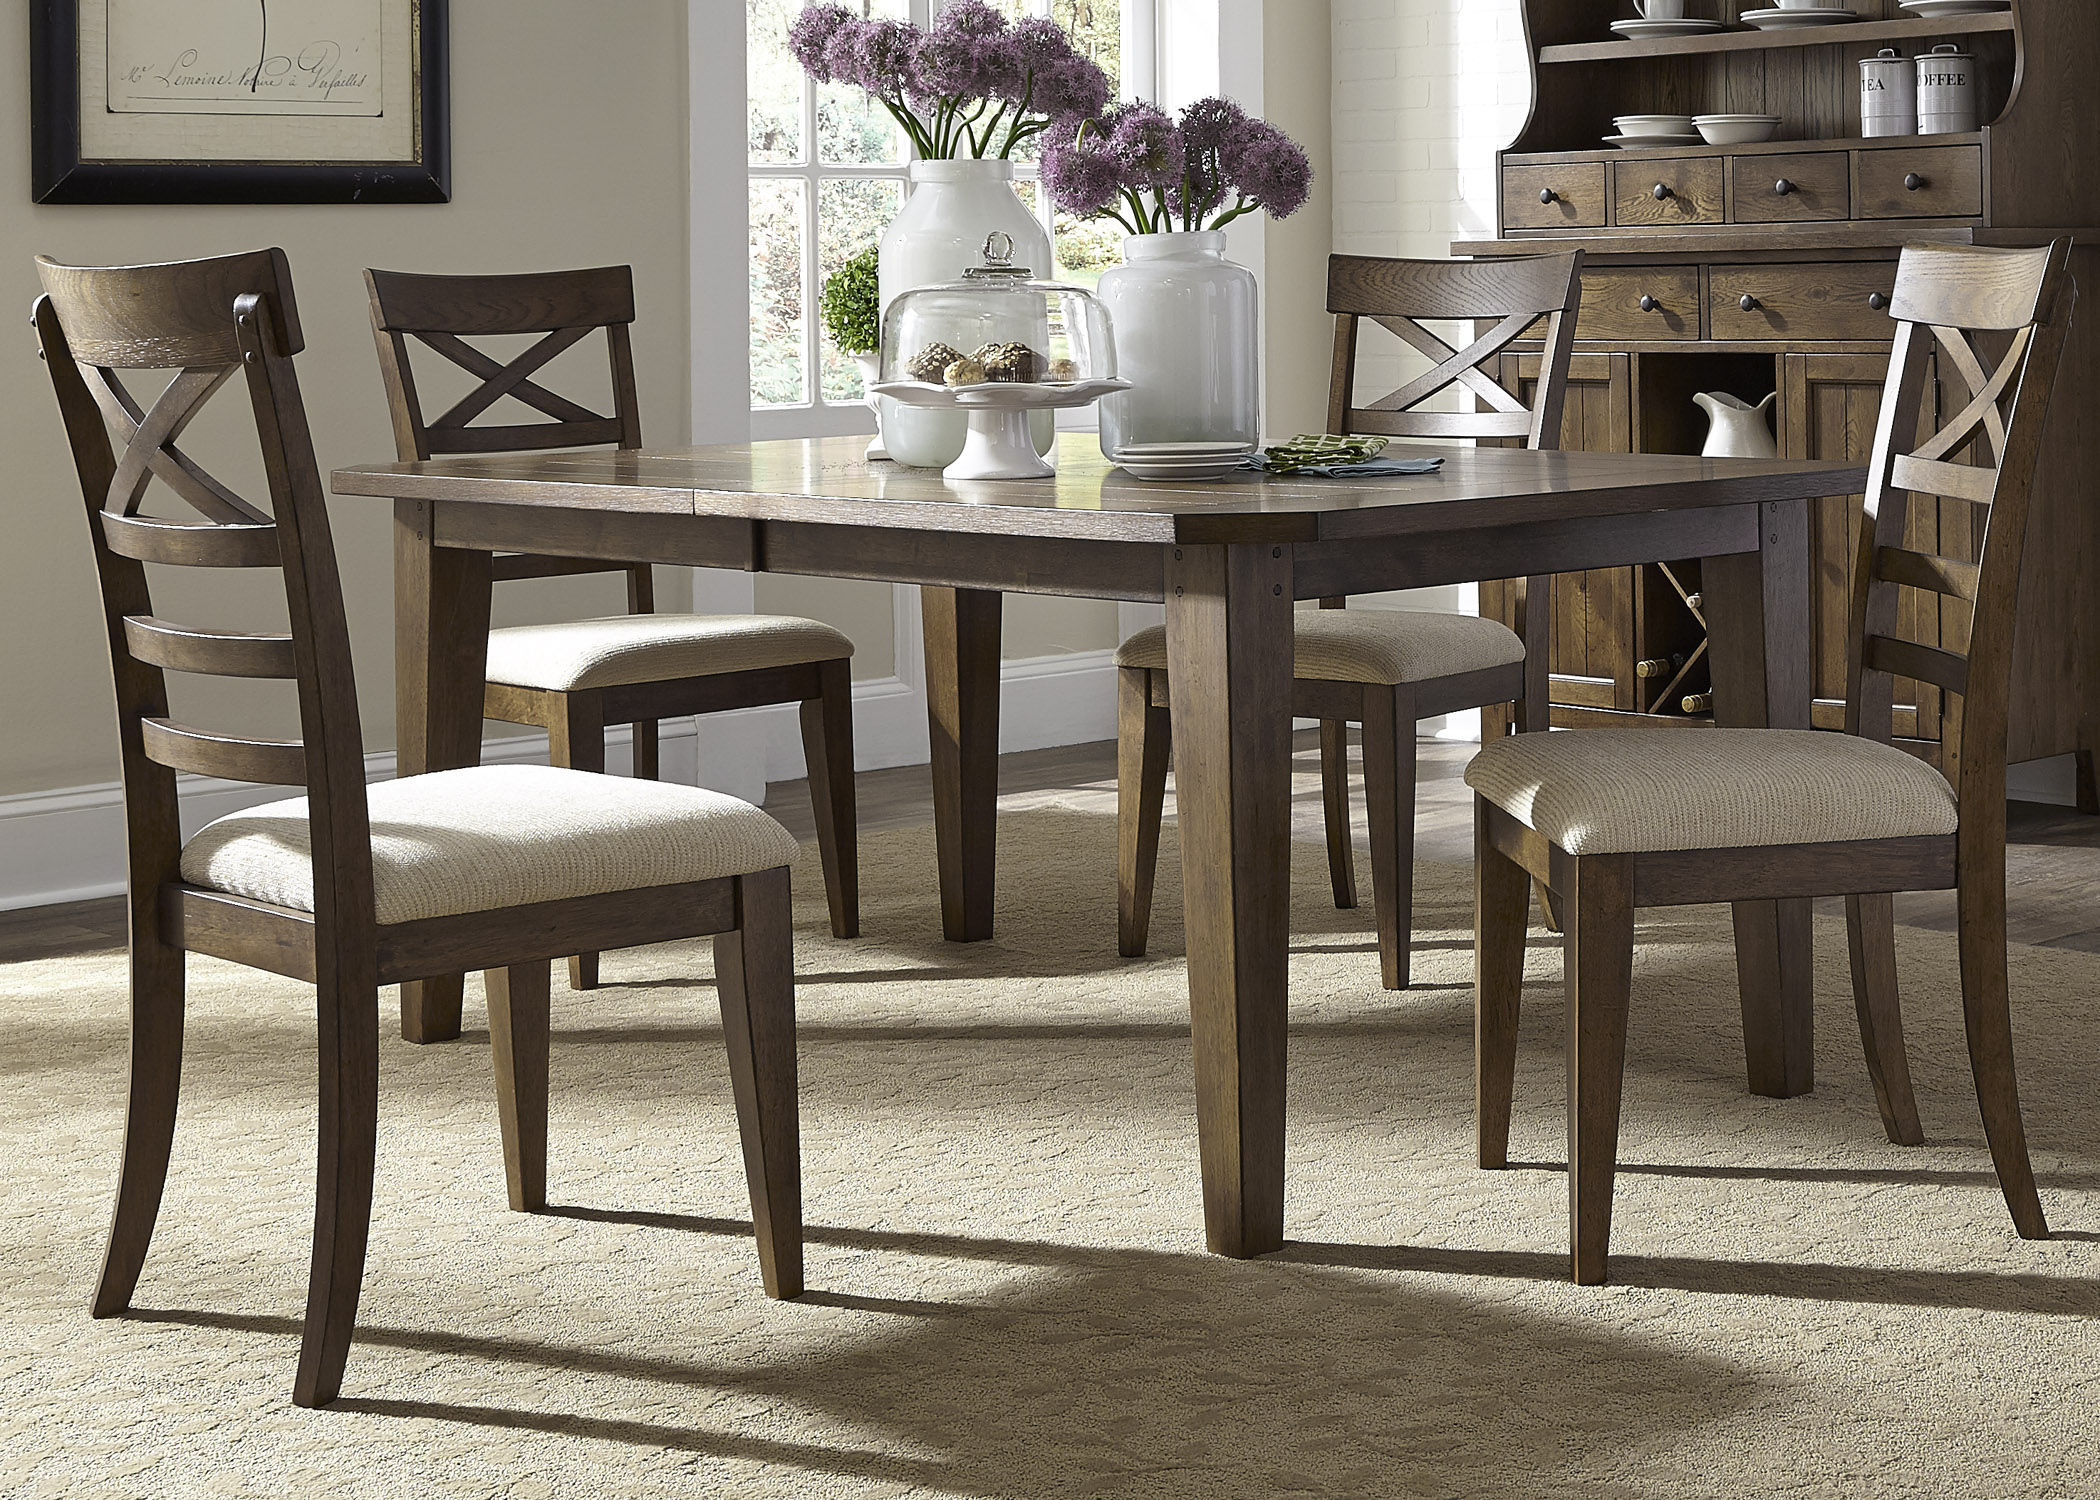 Liberty Furniture Bunker Hill 5 Piece Rectangular Table Set  - Item Number: 382-DR-O5RLS